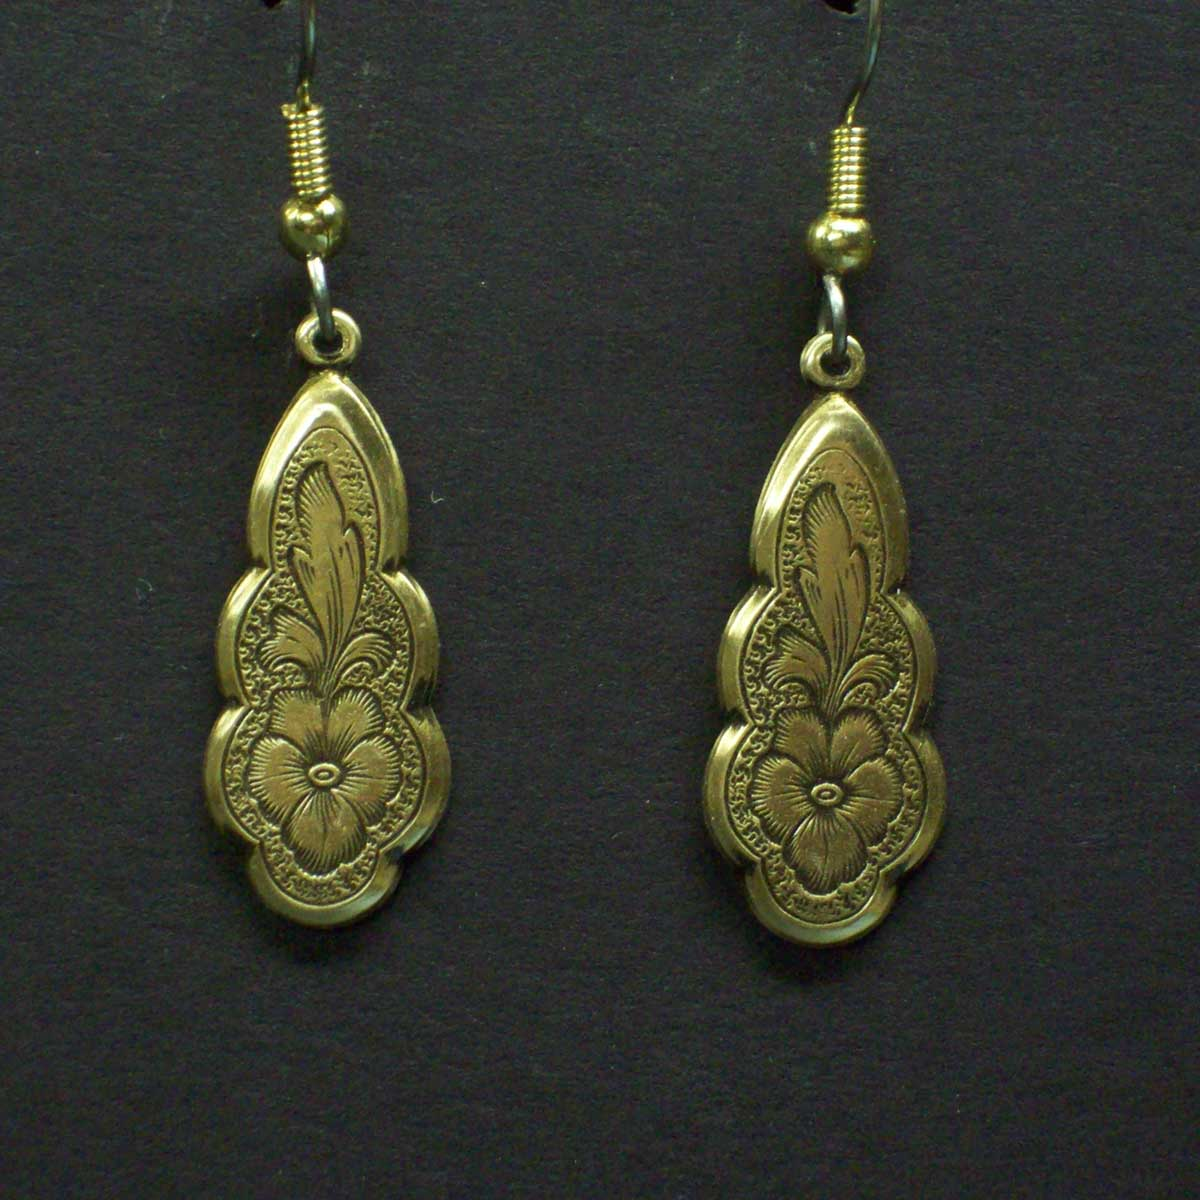 Victorian Flower Engraved Earrings